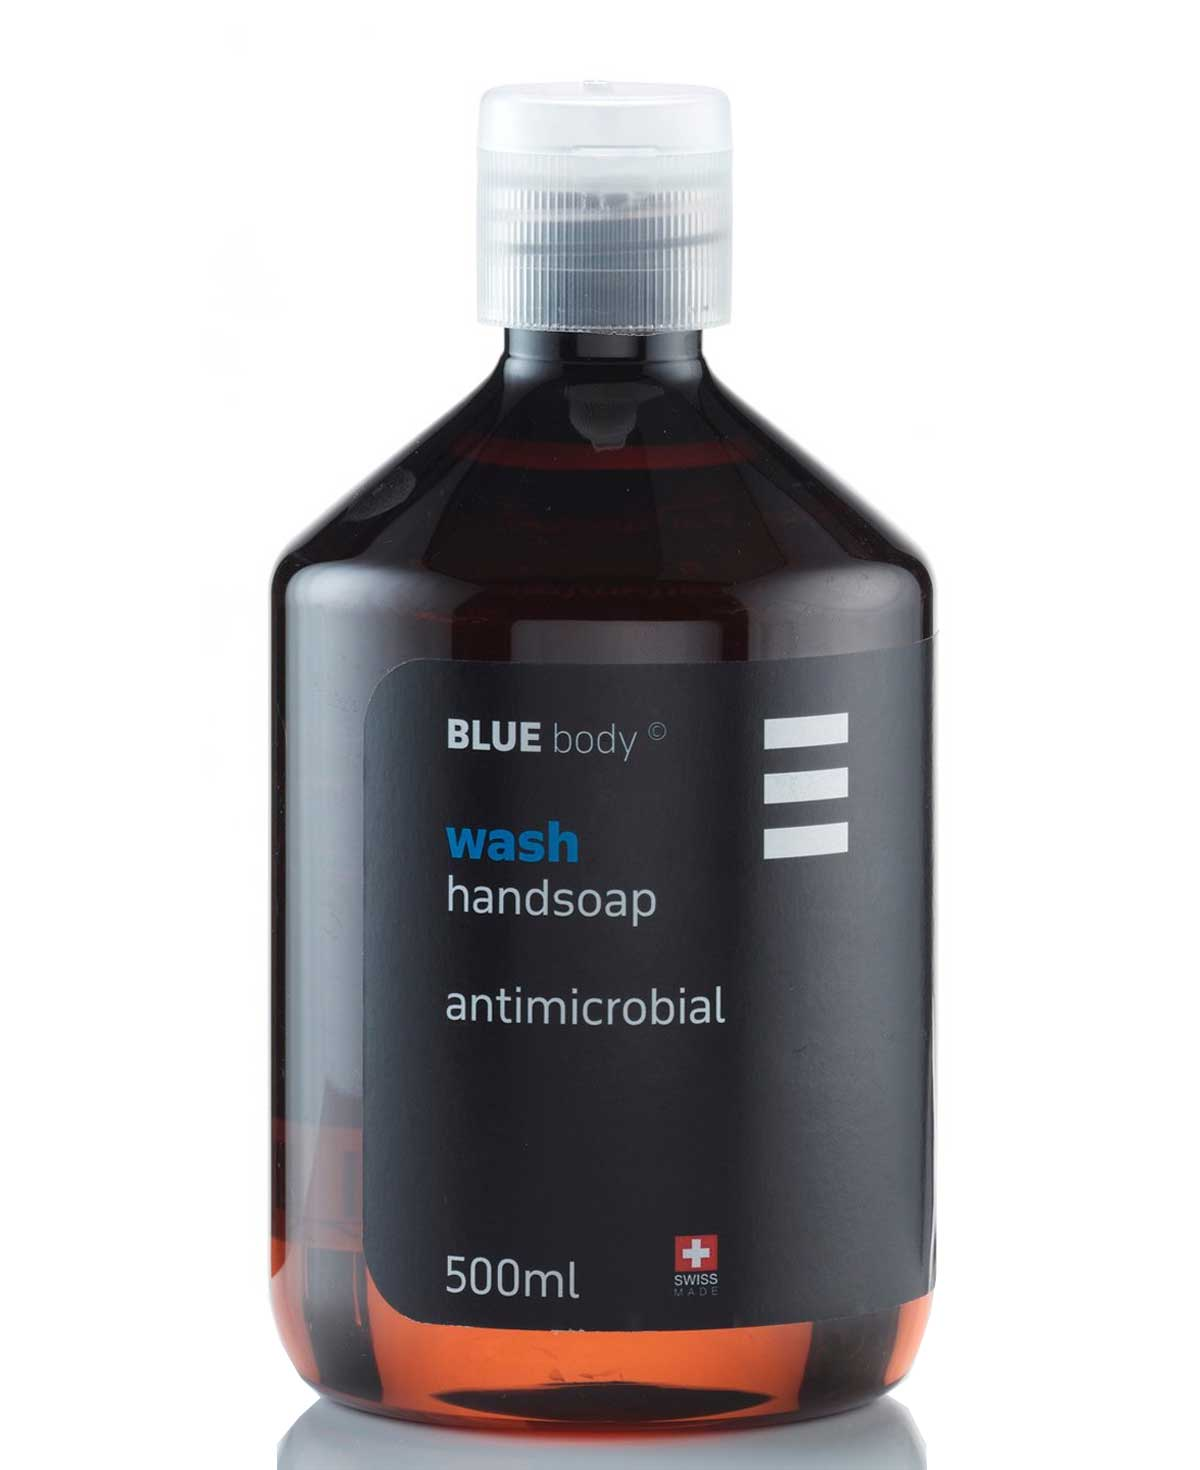 BLUE body wash handsoap antimicrobial 500ml